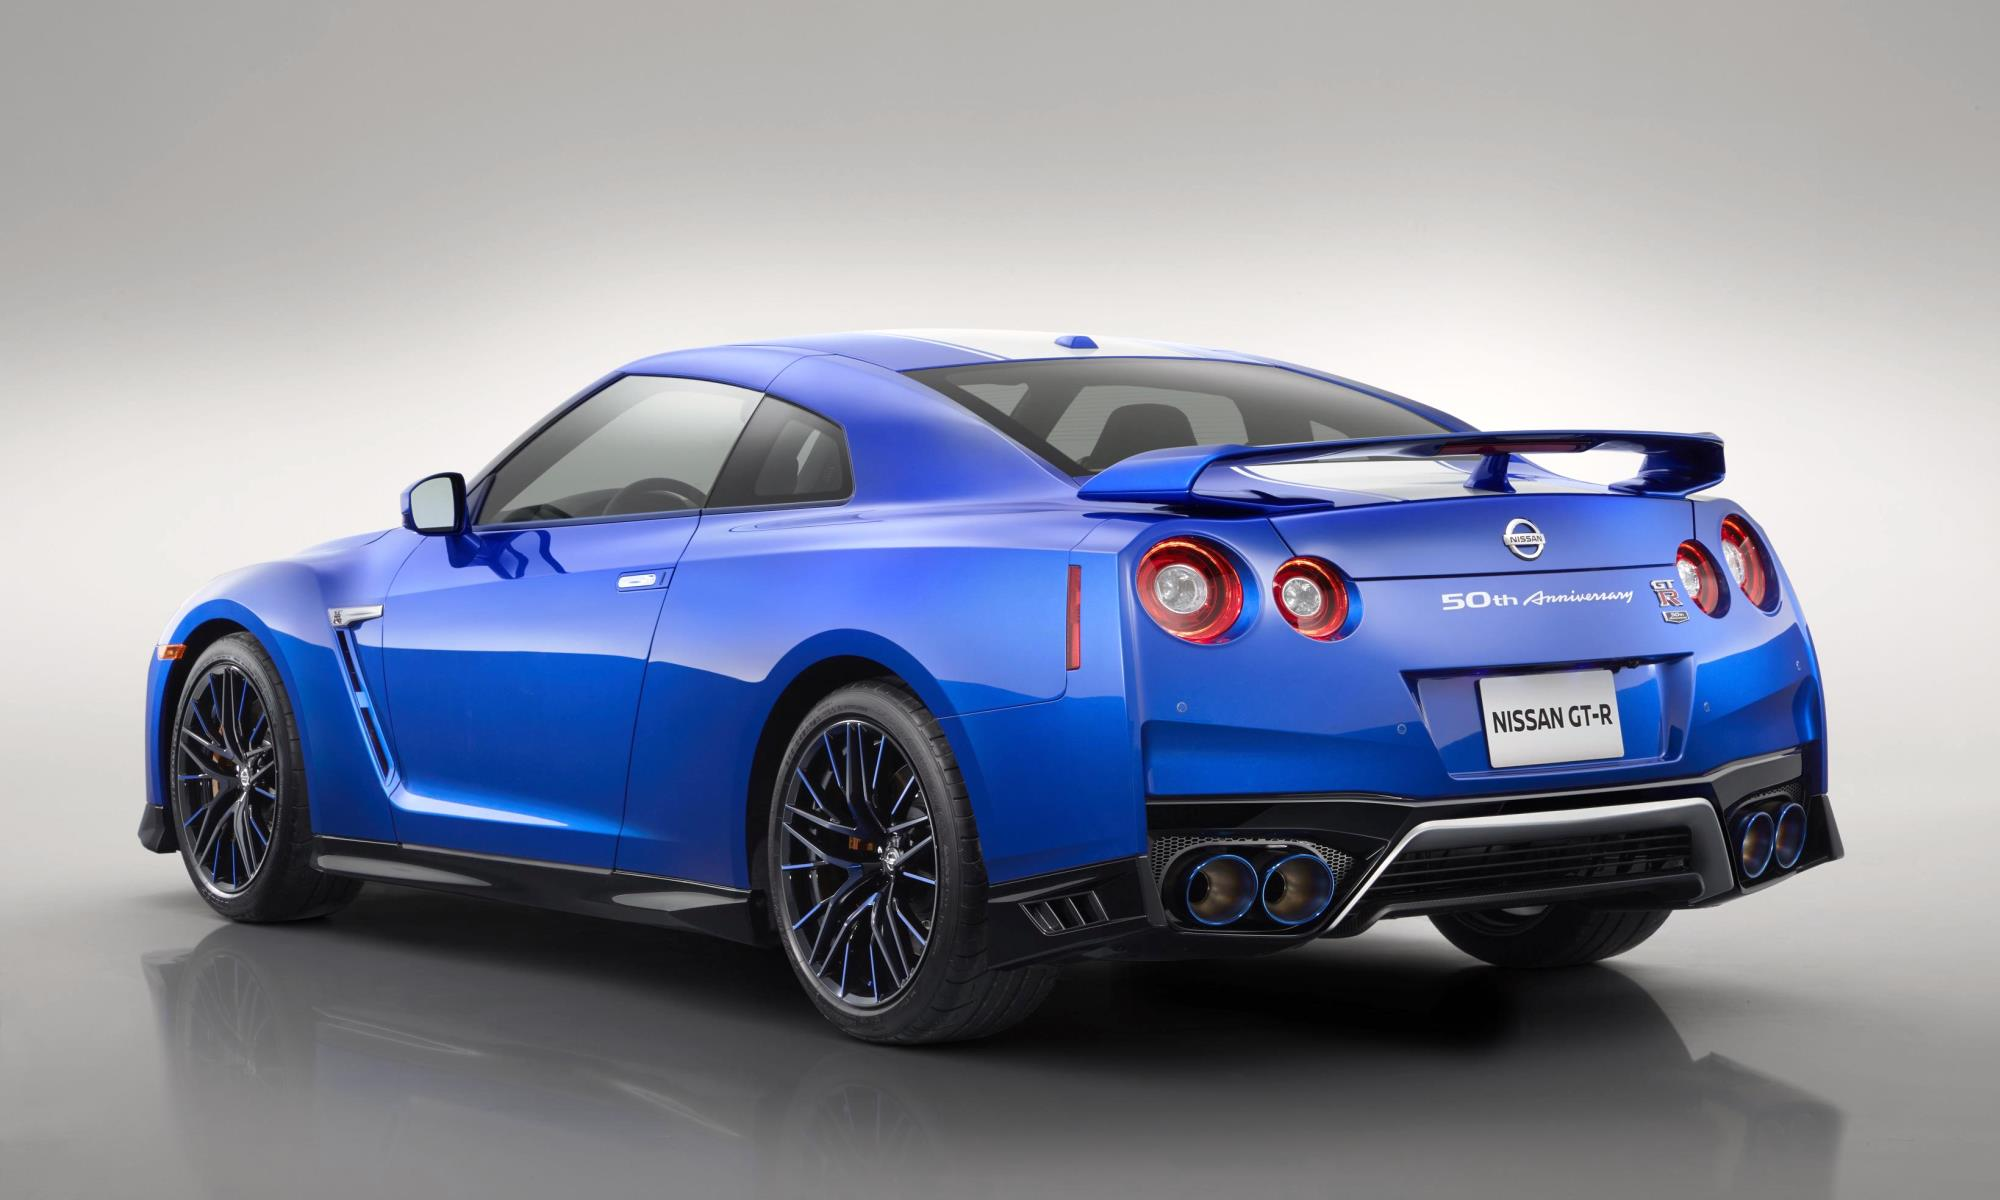 Nissan GT-R 50th Anniversary rear